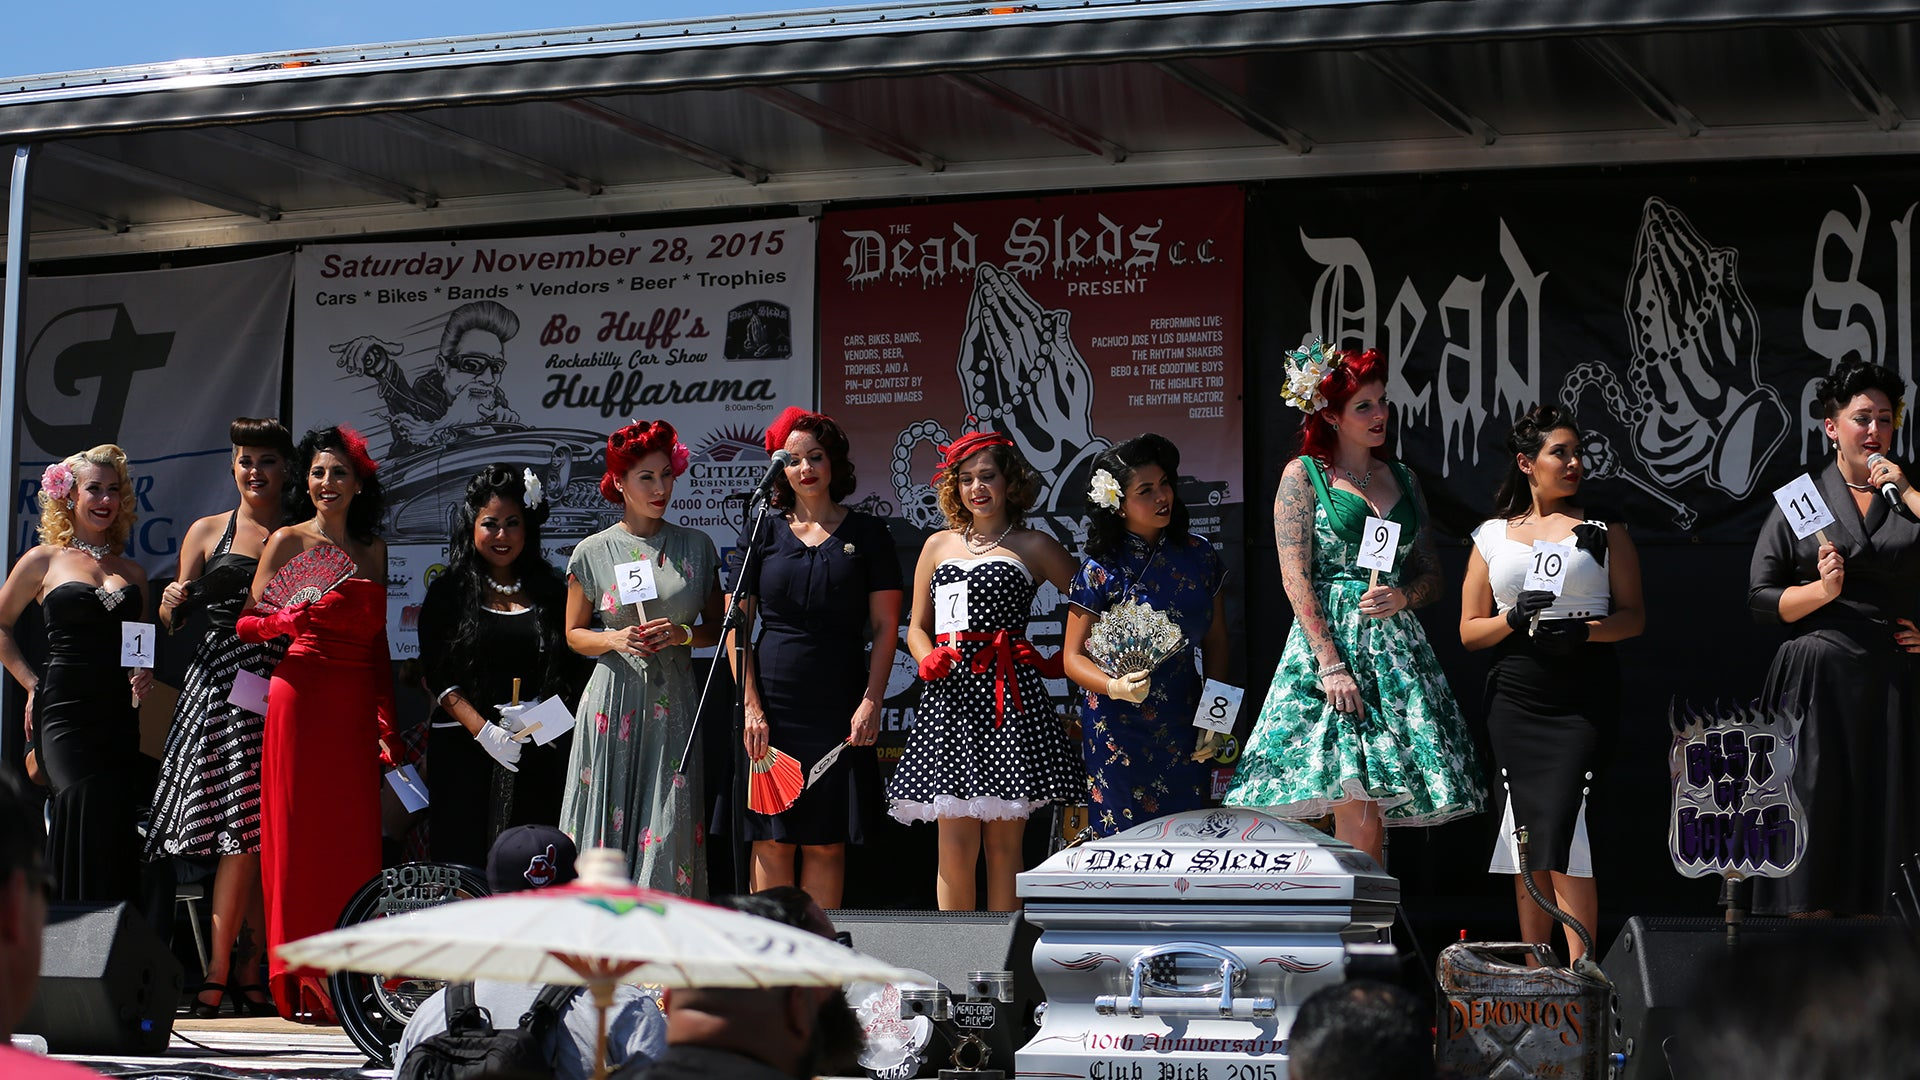 Pin Up Girl Contestants Dead Sleds Car Show Anniversary